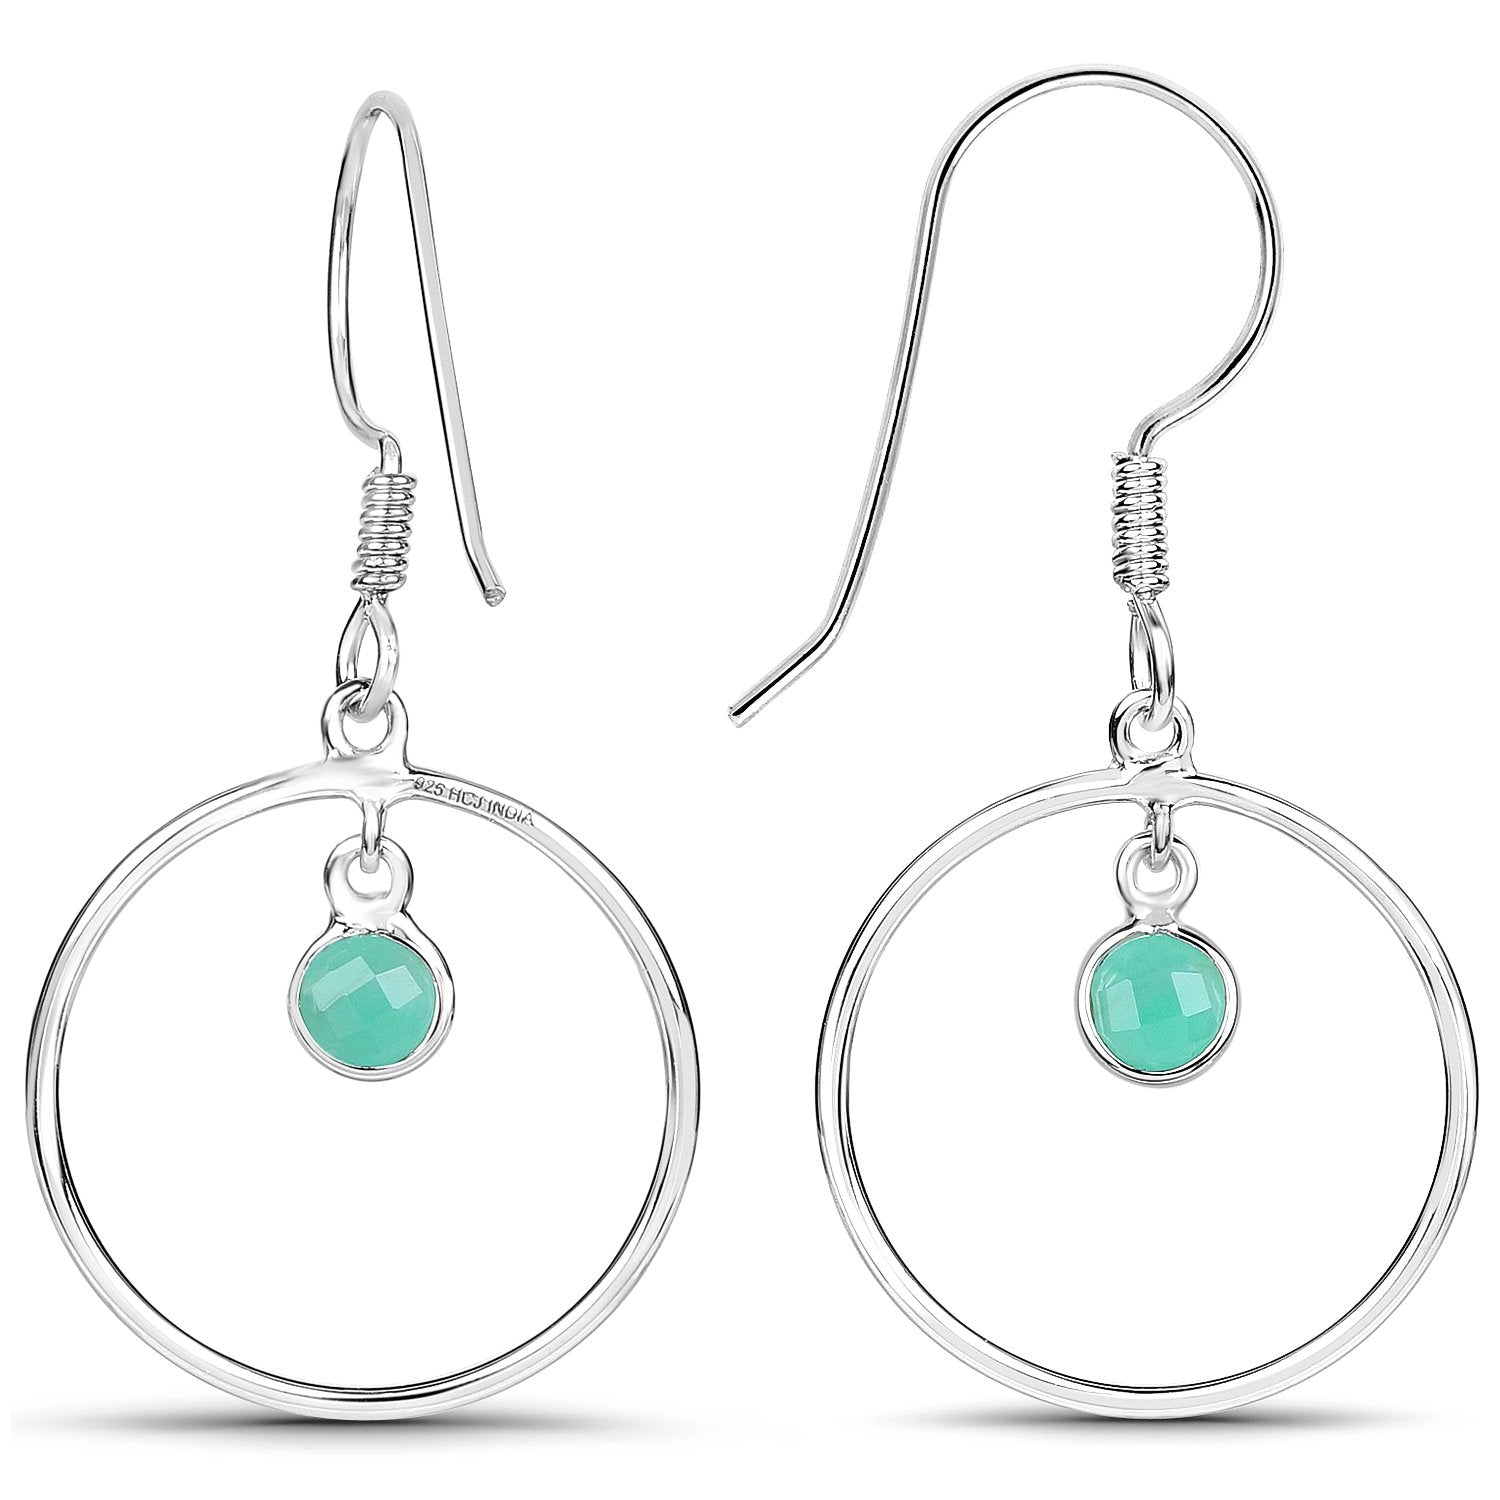 LoveHuang 0.44 Carats Genuine Emerald Minimalist Earrings Solid .925 Sterling Silver With Rhodium Plating